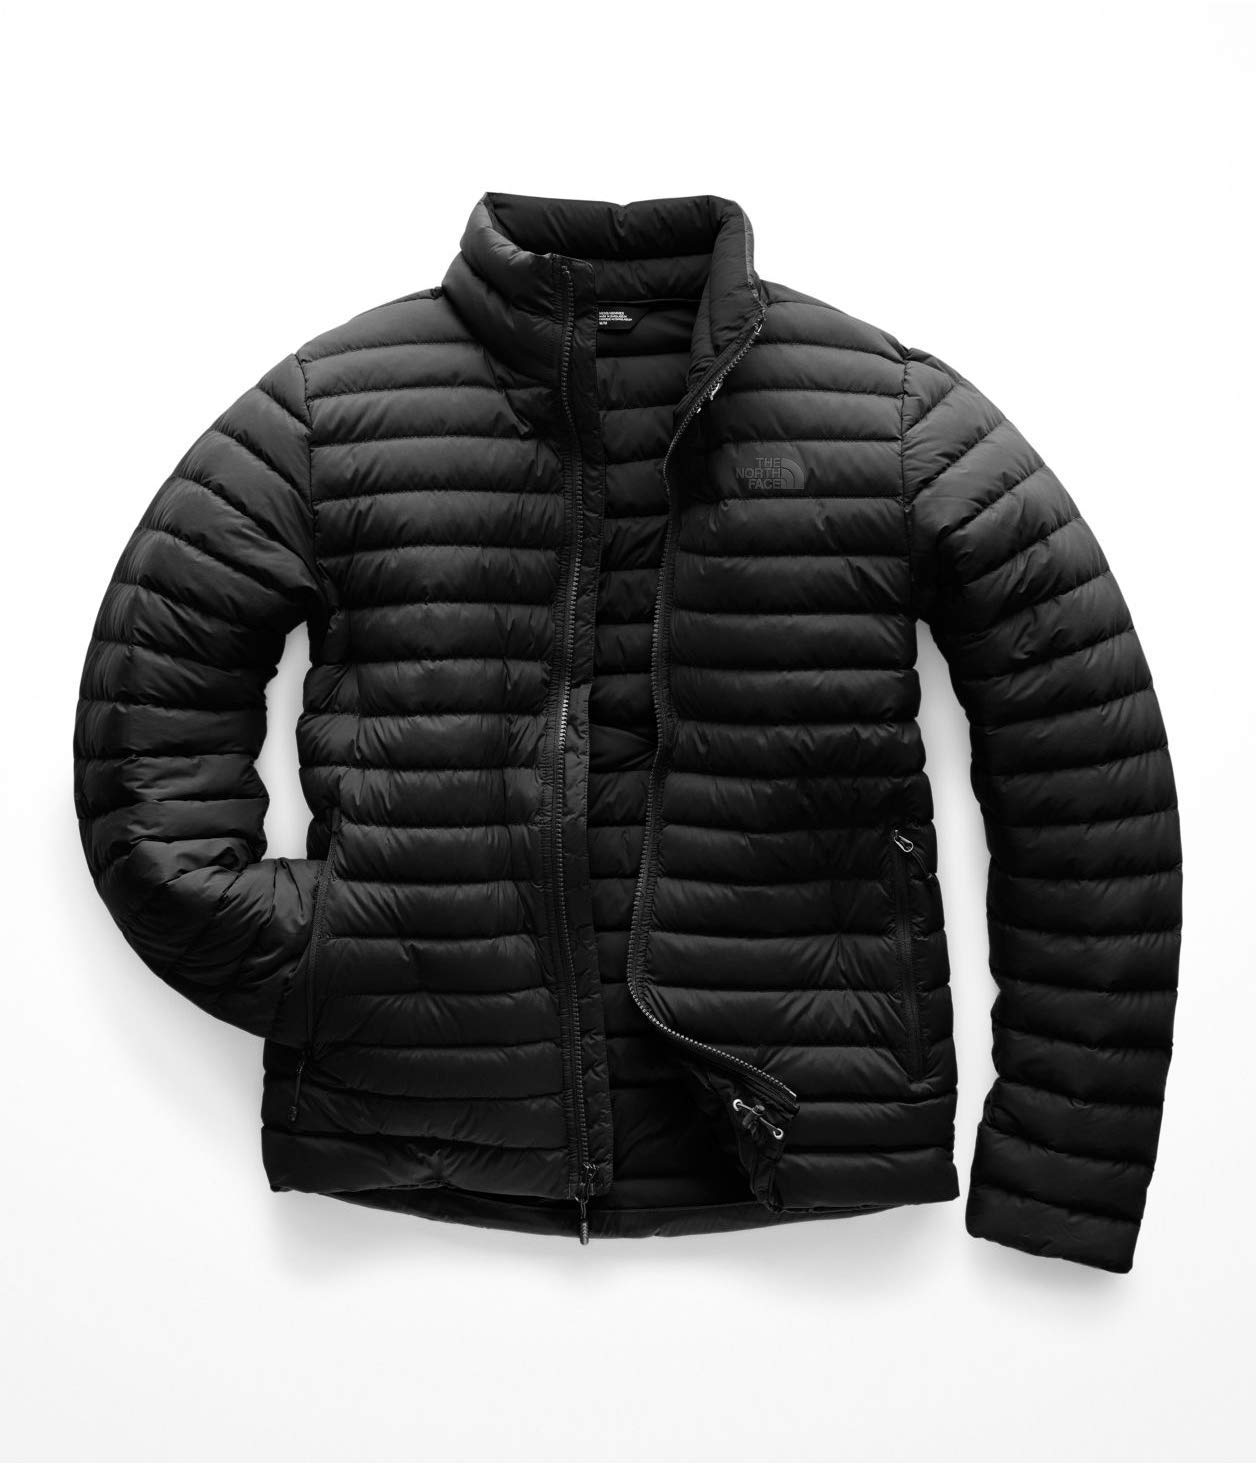 The North Face Stretch Down Jacket - Men's NF0A3O7NKX7